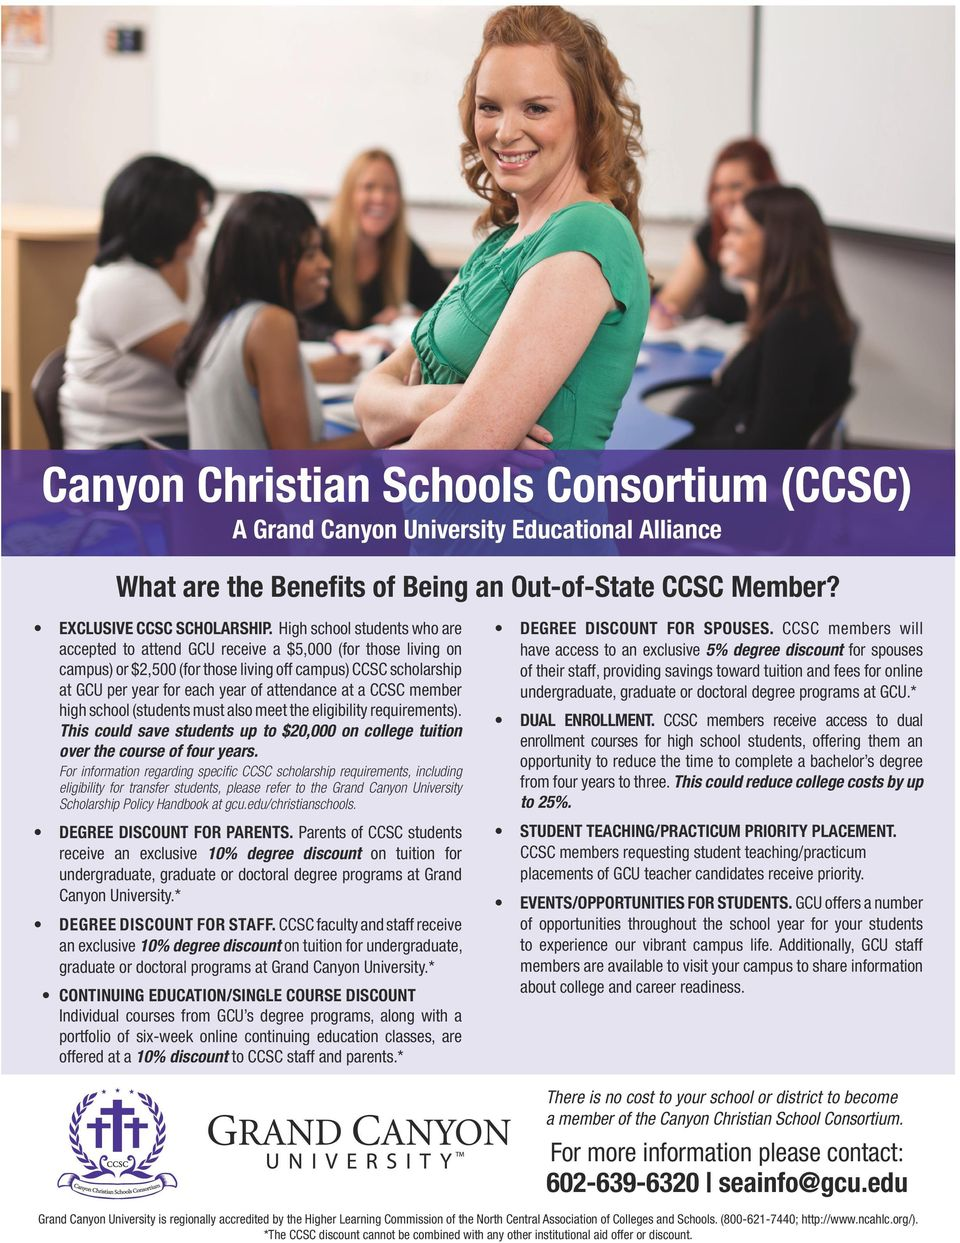 at a CCSC member high school (students must also meet the eligibility requirements). This could save students up to $20,000 on college tuition over the course of four years.